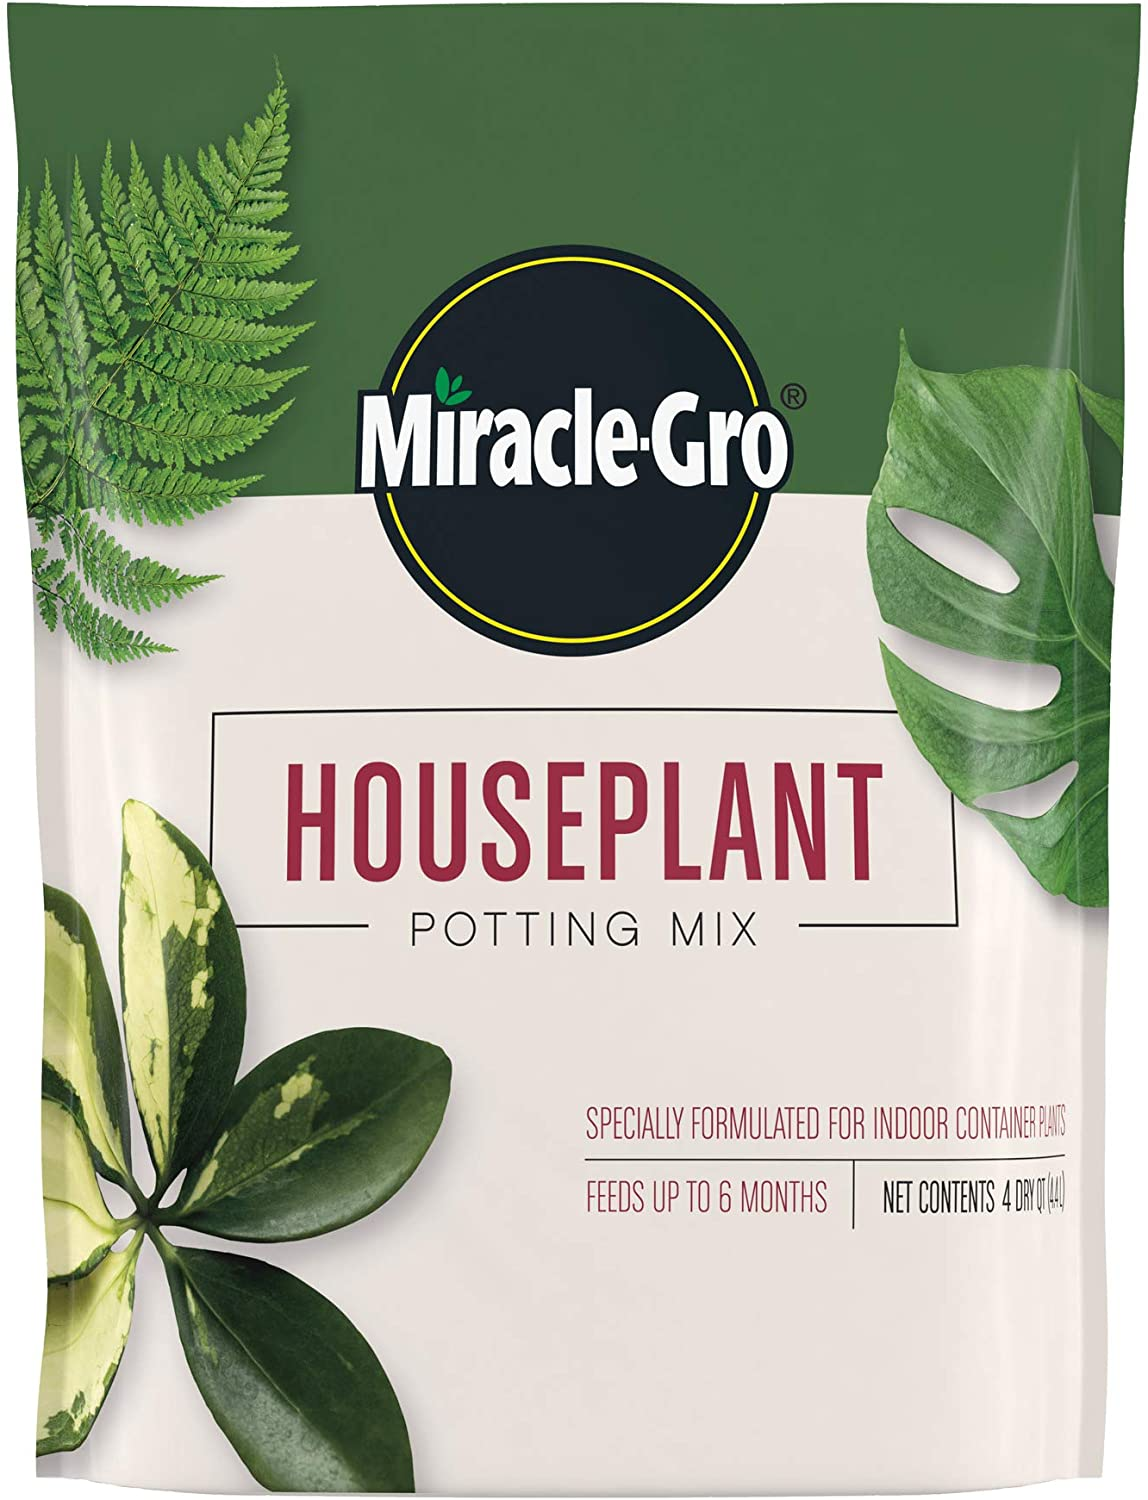 Miracle-Gro Houseplant Excellence Potting Max 63% OFF Mix: Soil for Fertilized Perlite